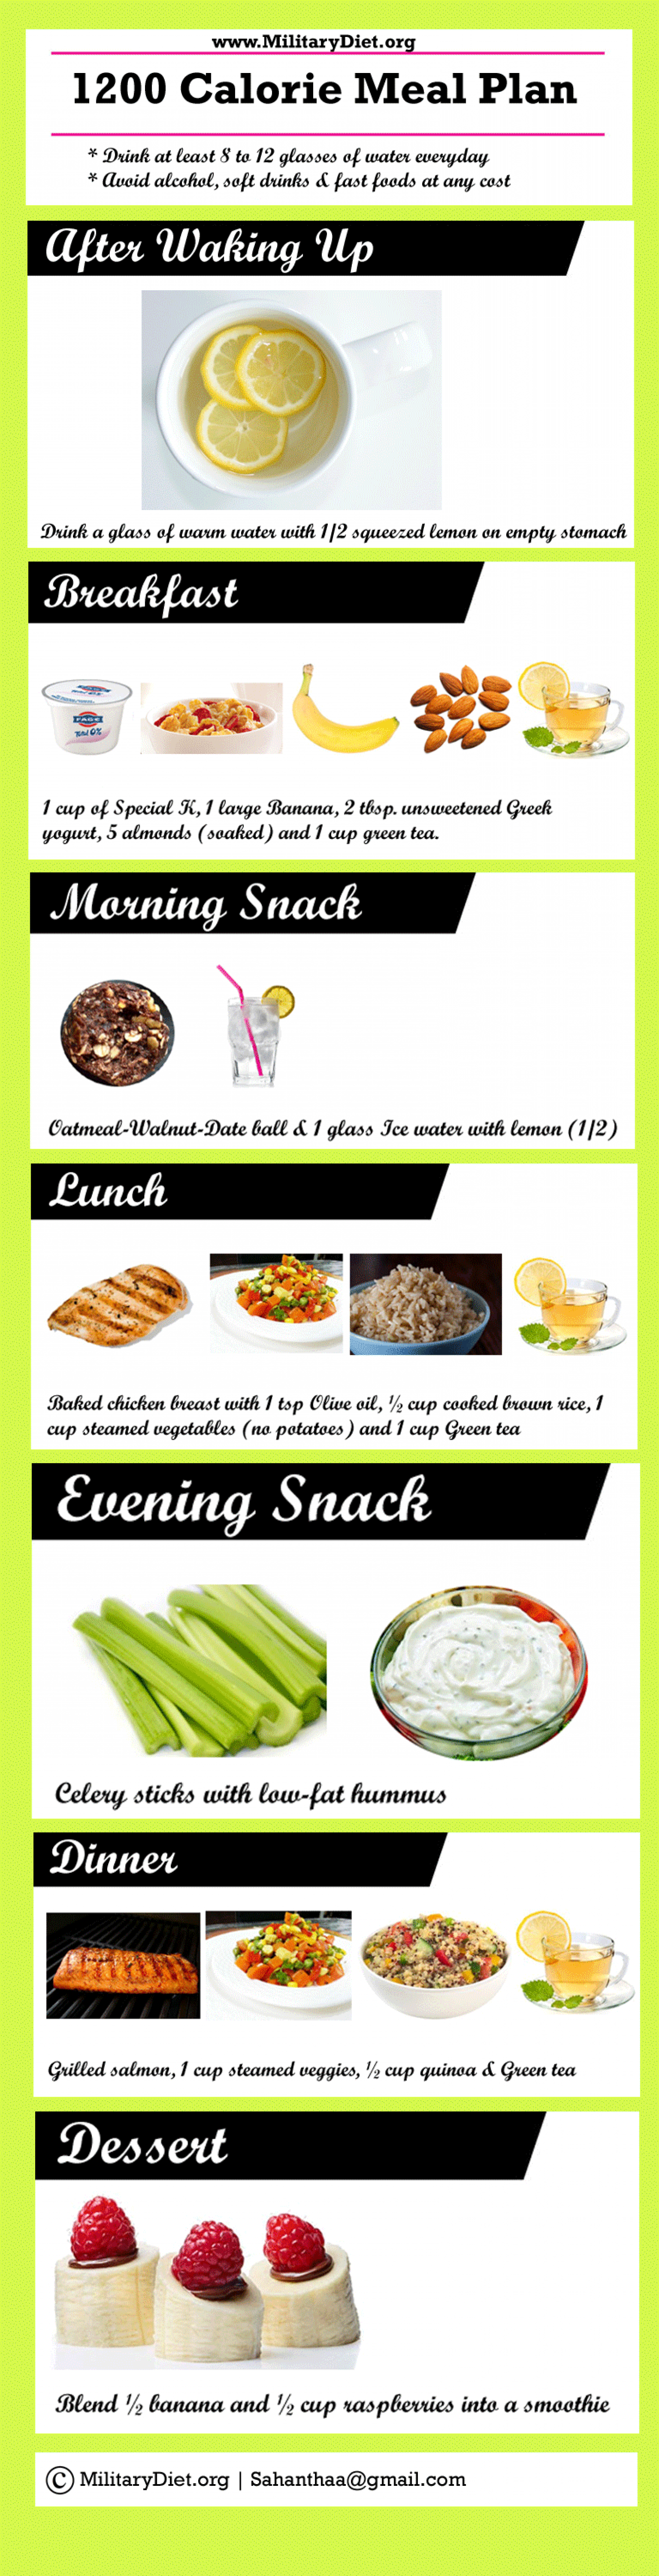 a meal plan for 1200 calories  1200 Calorie Meal Plan Sample Menu for Weight Loss | Visual